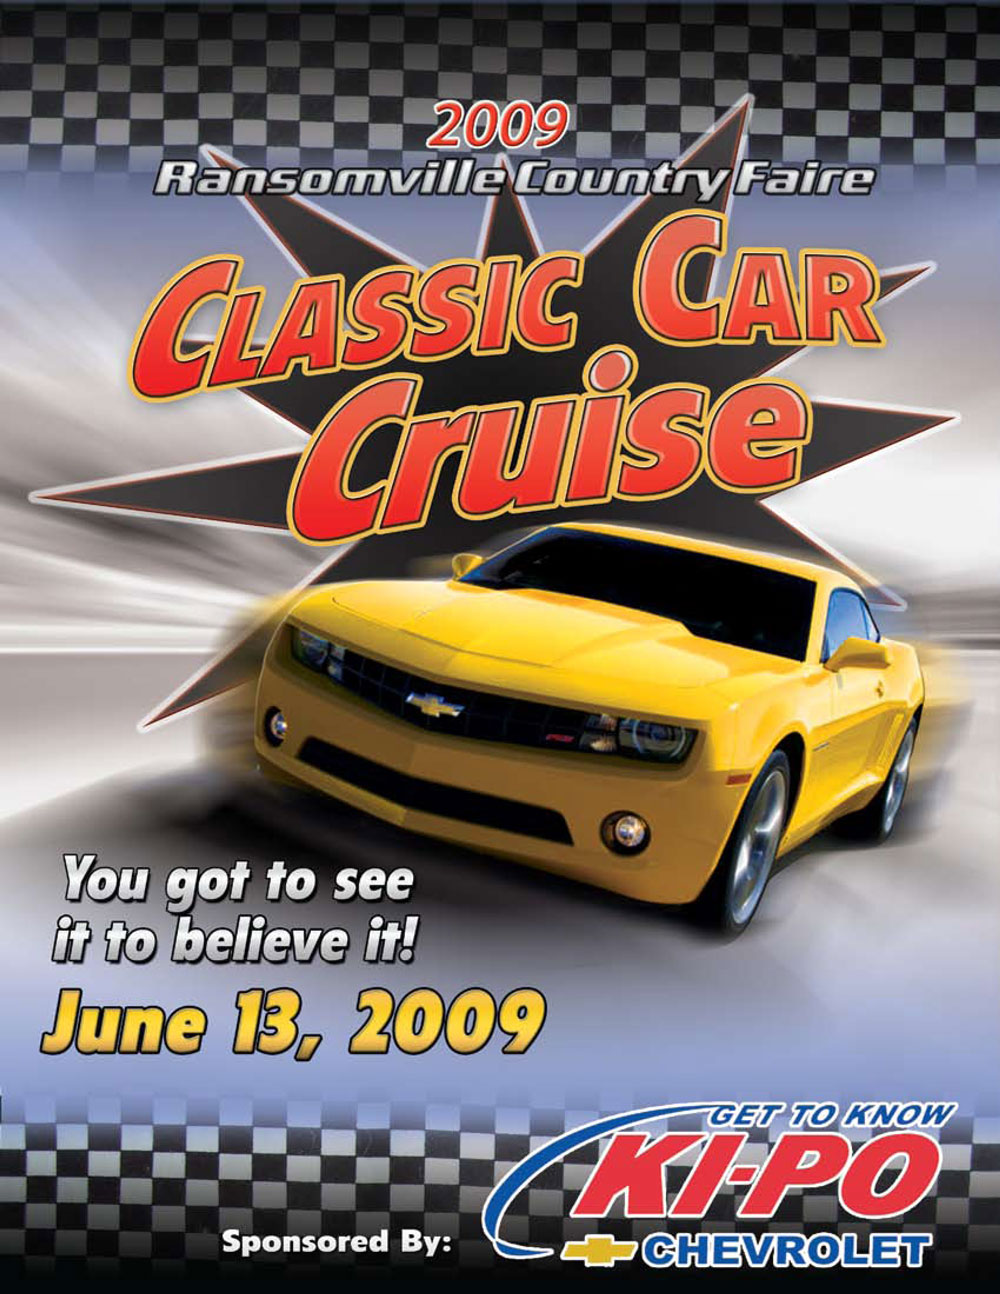 Car Show Flyer BrianDeFreescom - Blank car show flyer